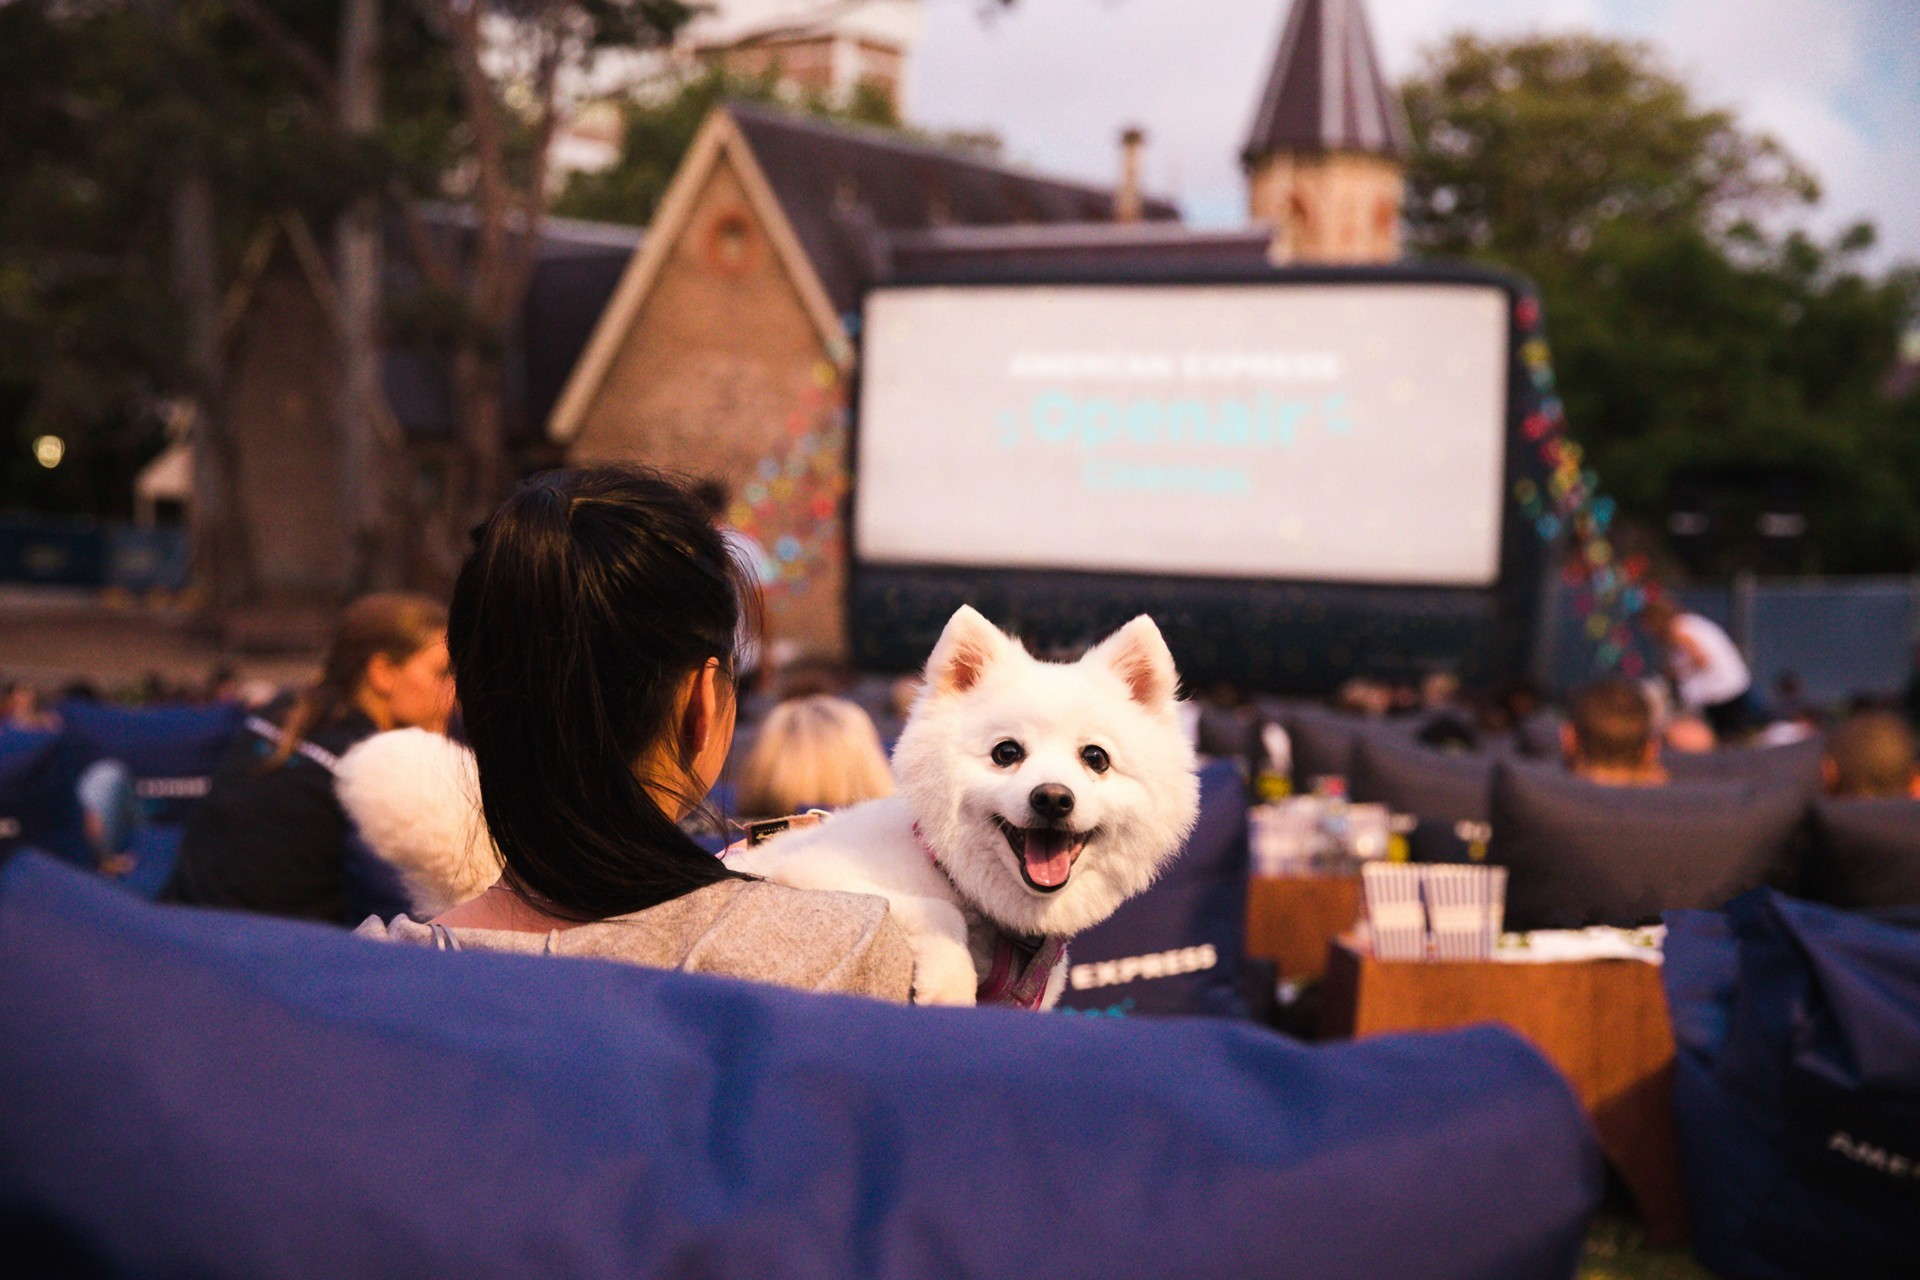 A person and a dog at an outdoor cinema.